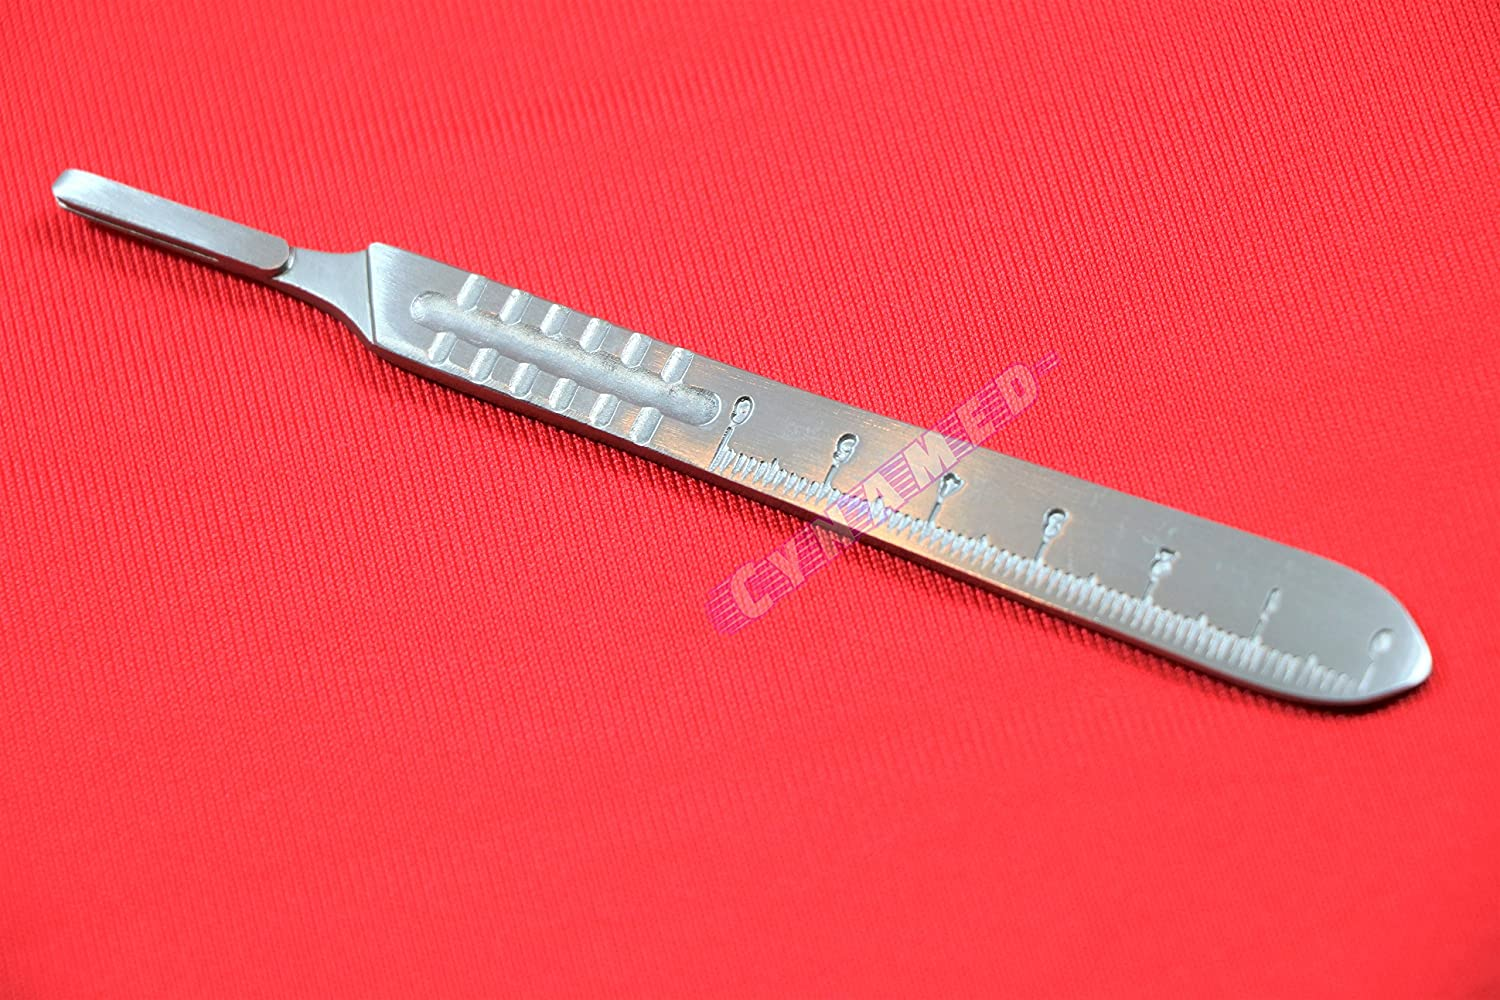 German HIGH Grade Scalpel Handle NO4 1 Each Surgical Veterinary Dental Crafts CYNAMED